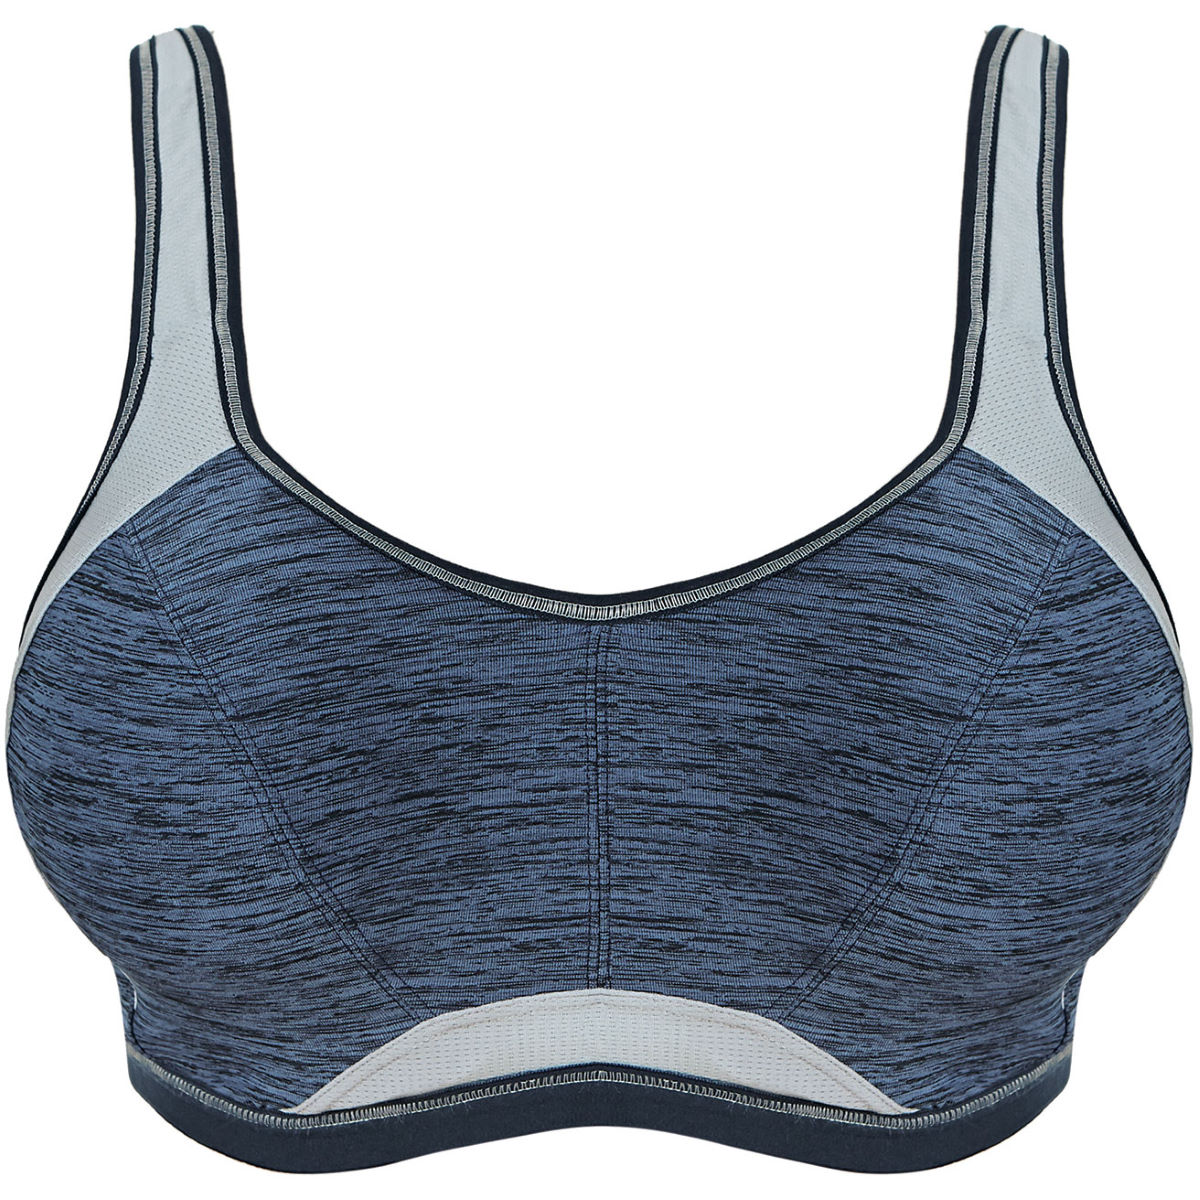 Freya Active Epic UW Crop Top Sports Bra - Ropa interior y sujetadores